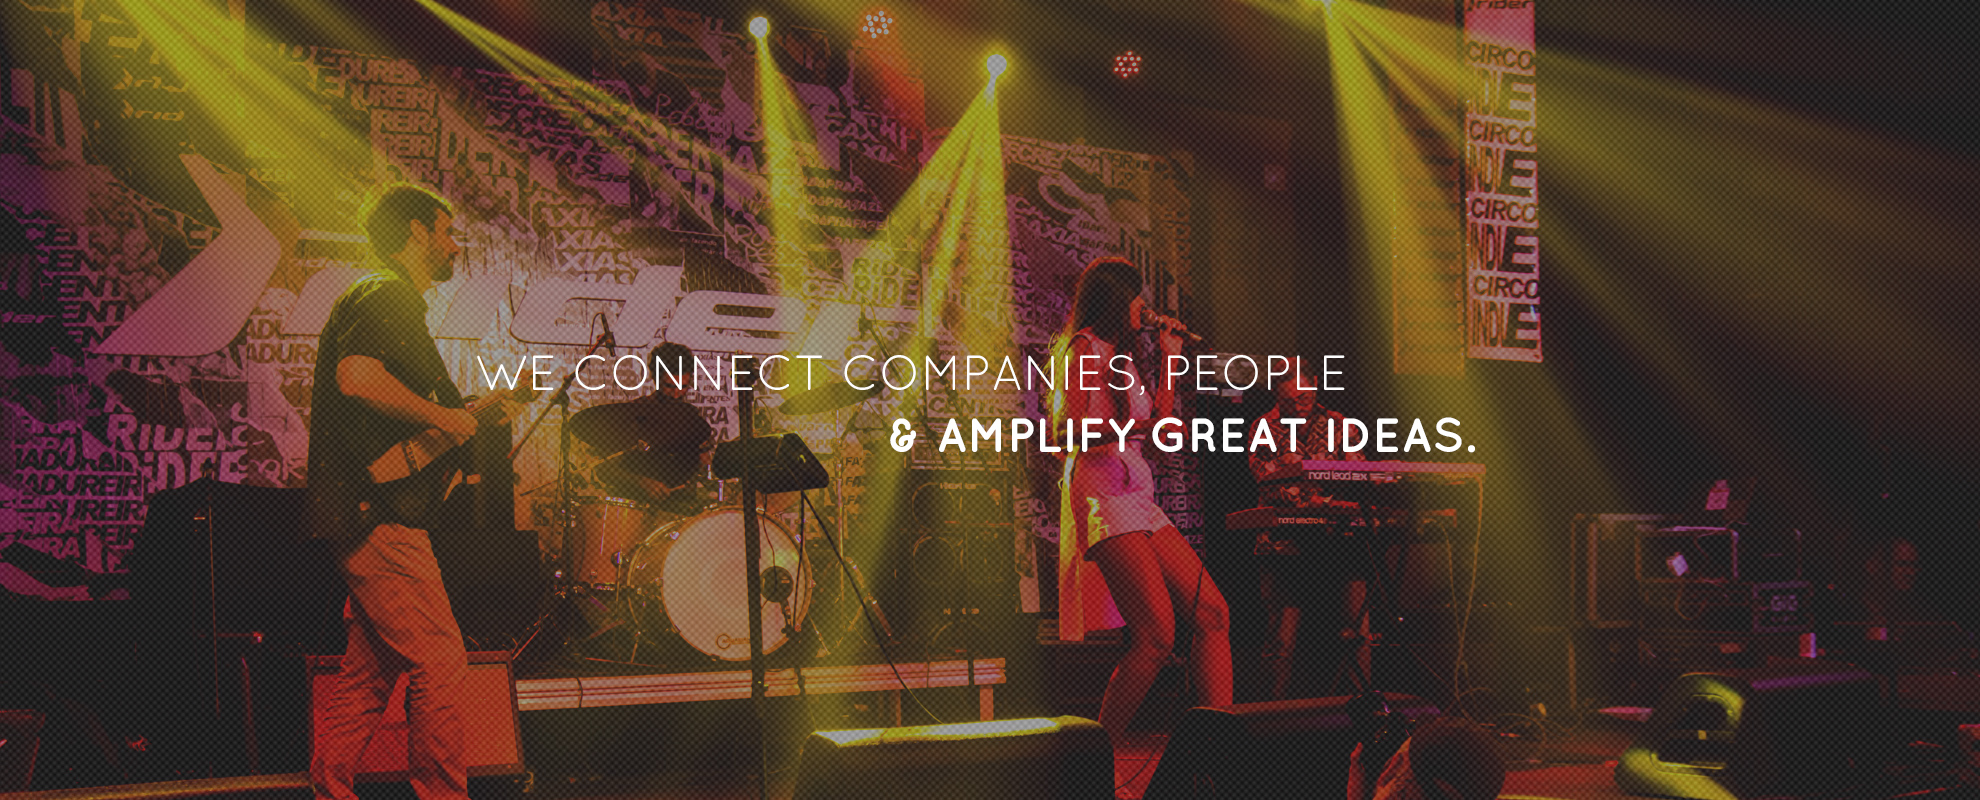 we-connect-campanies-people--amplify-great-ideas-2